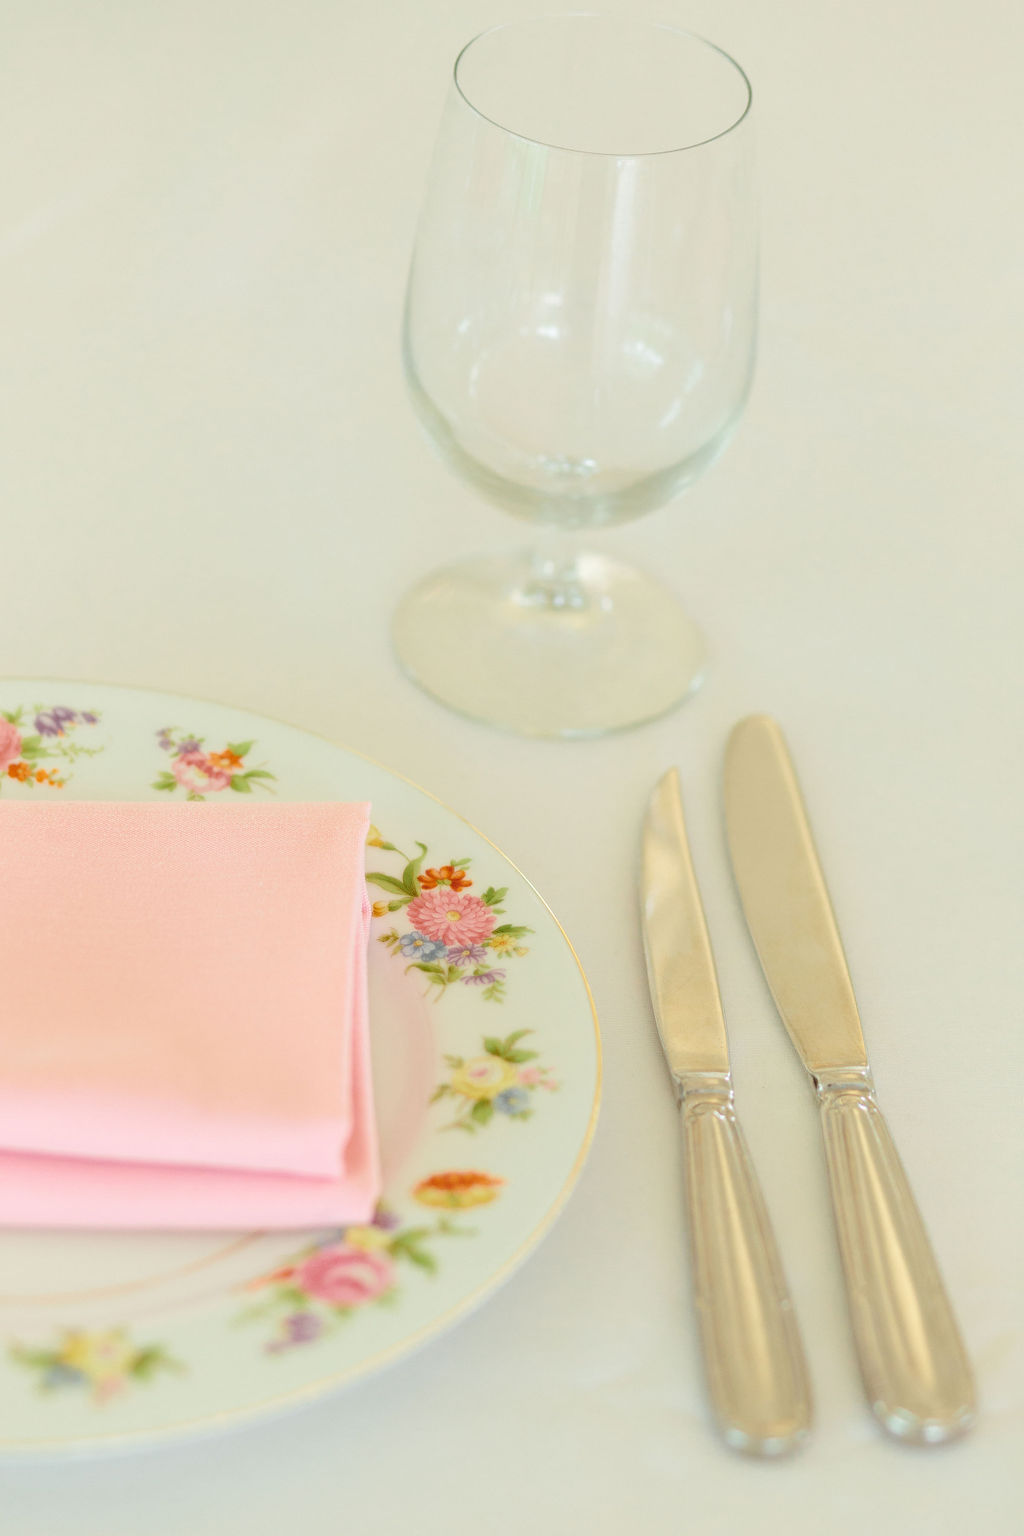 Vintage china for place setting at wedding - Preppy spring wedding at Zingerman's Cornman Farms - Leah E. Moss Designs - photo by Katie Grace Photography